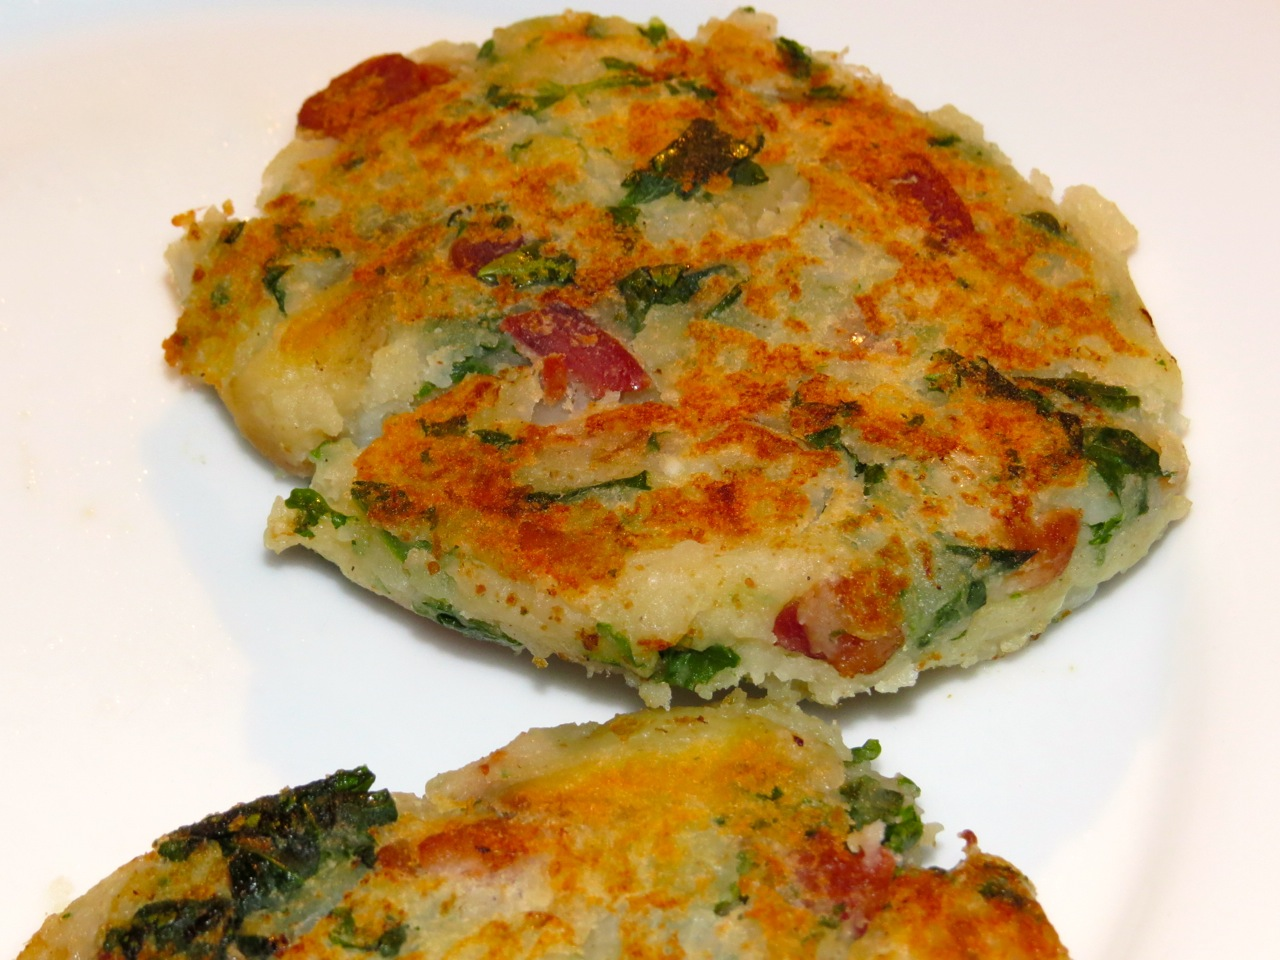 Mashed Potato and Kale Cakes ©MyNewlywedCookingAdventures 2013